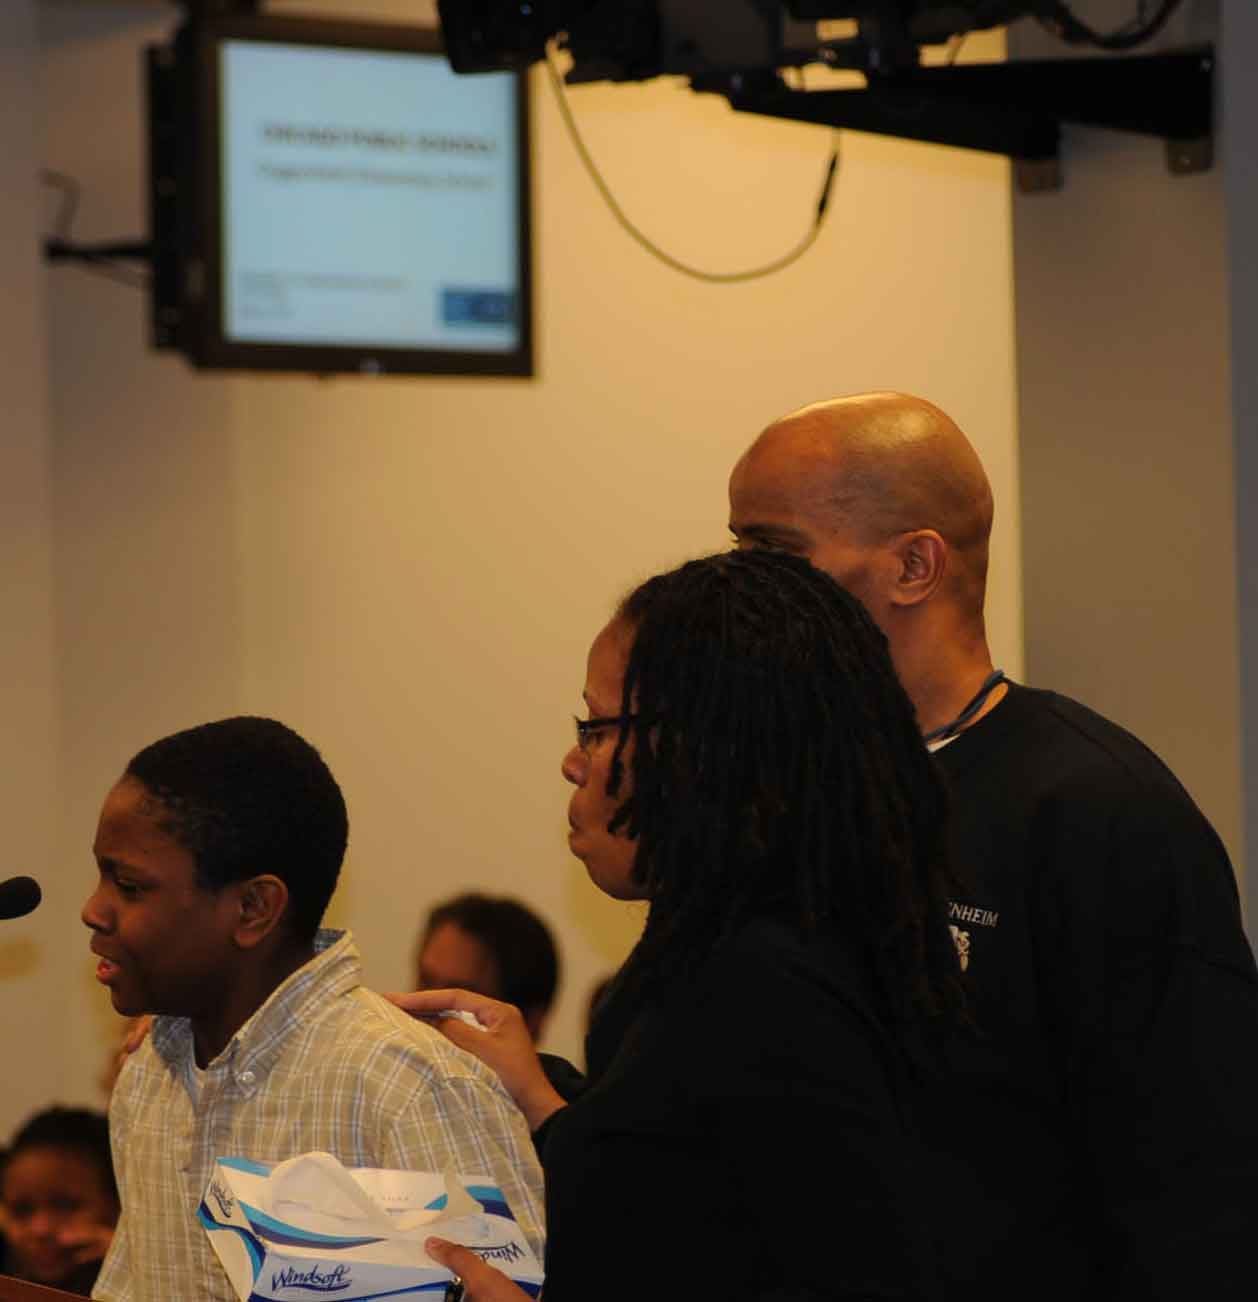 When one of the students who testified against the closing of Guggenheim Elmentary School broke down in tears during the January 29, 2010 hearing, teachers Jacqueline Jones and Earnest Jones brought tissues and comfort to him. Substance photo by George N. Schmidt.